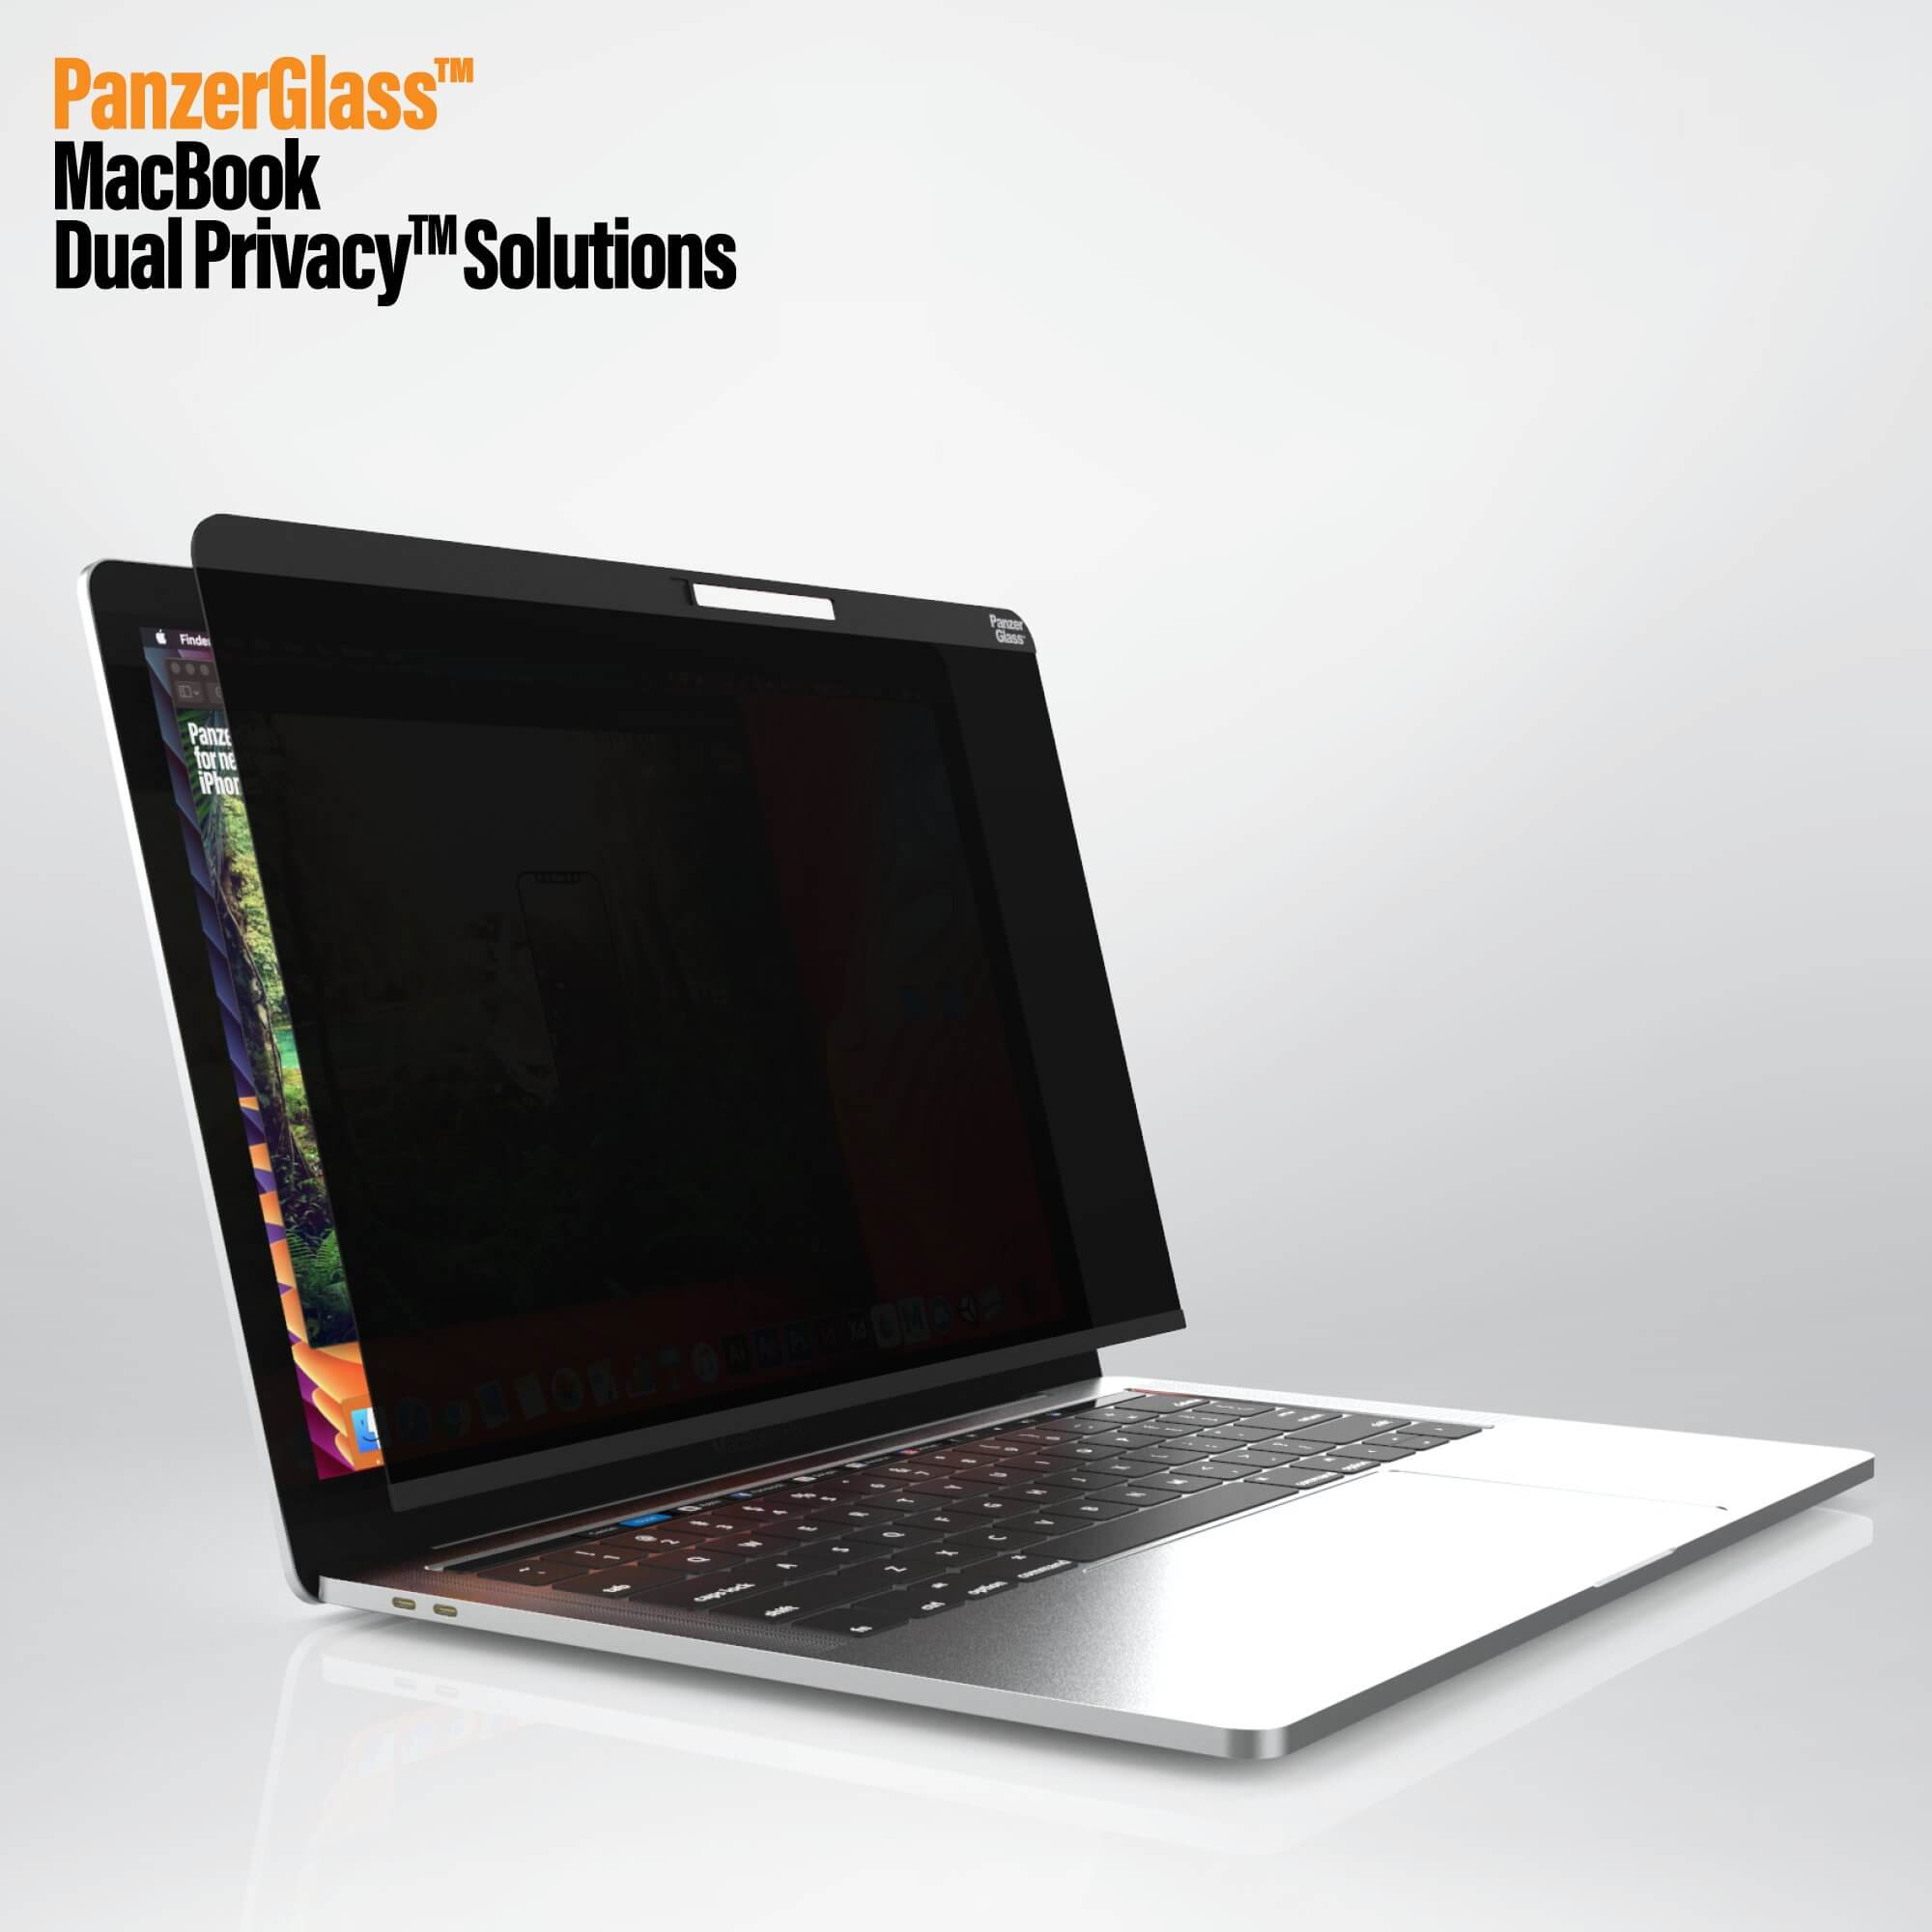 PanzerGlass Magnetic Privacy 13.3'' MacBook Air/Pro